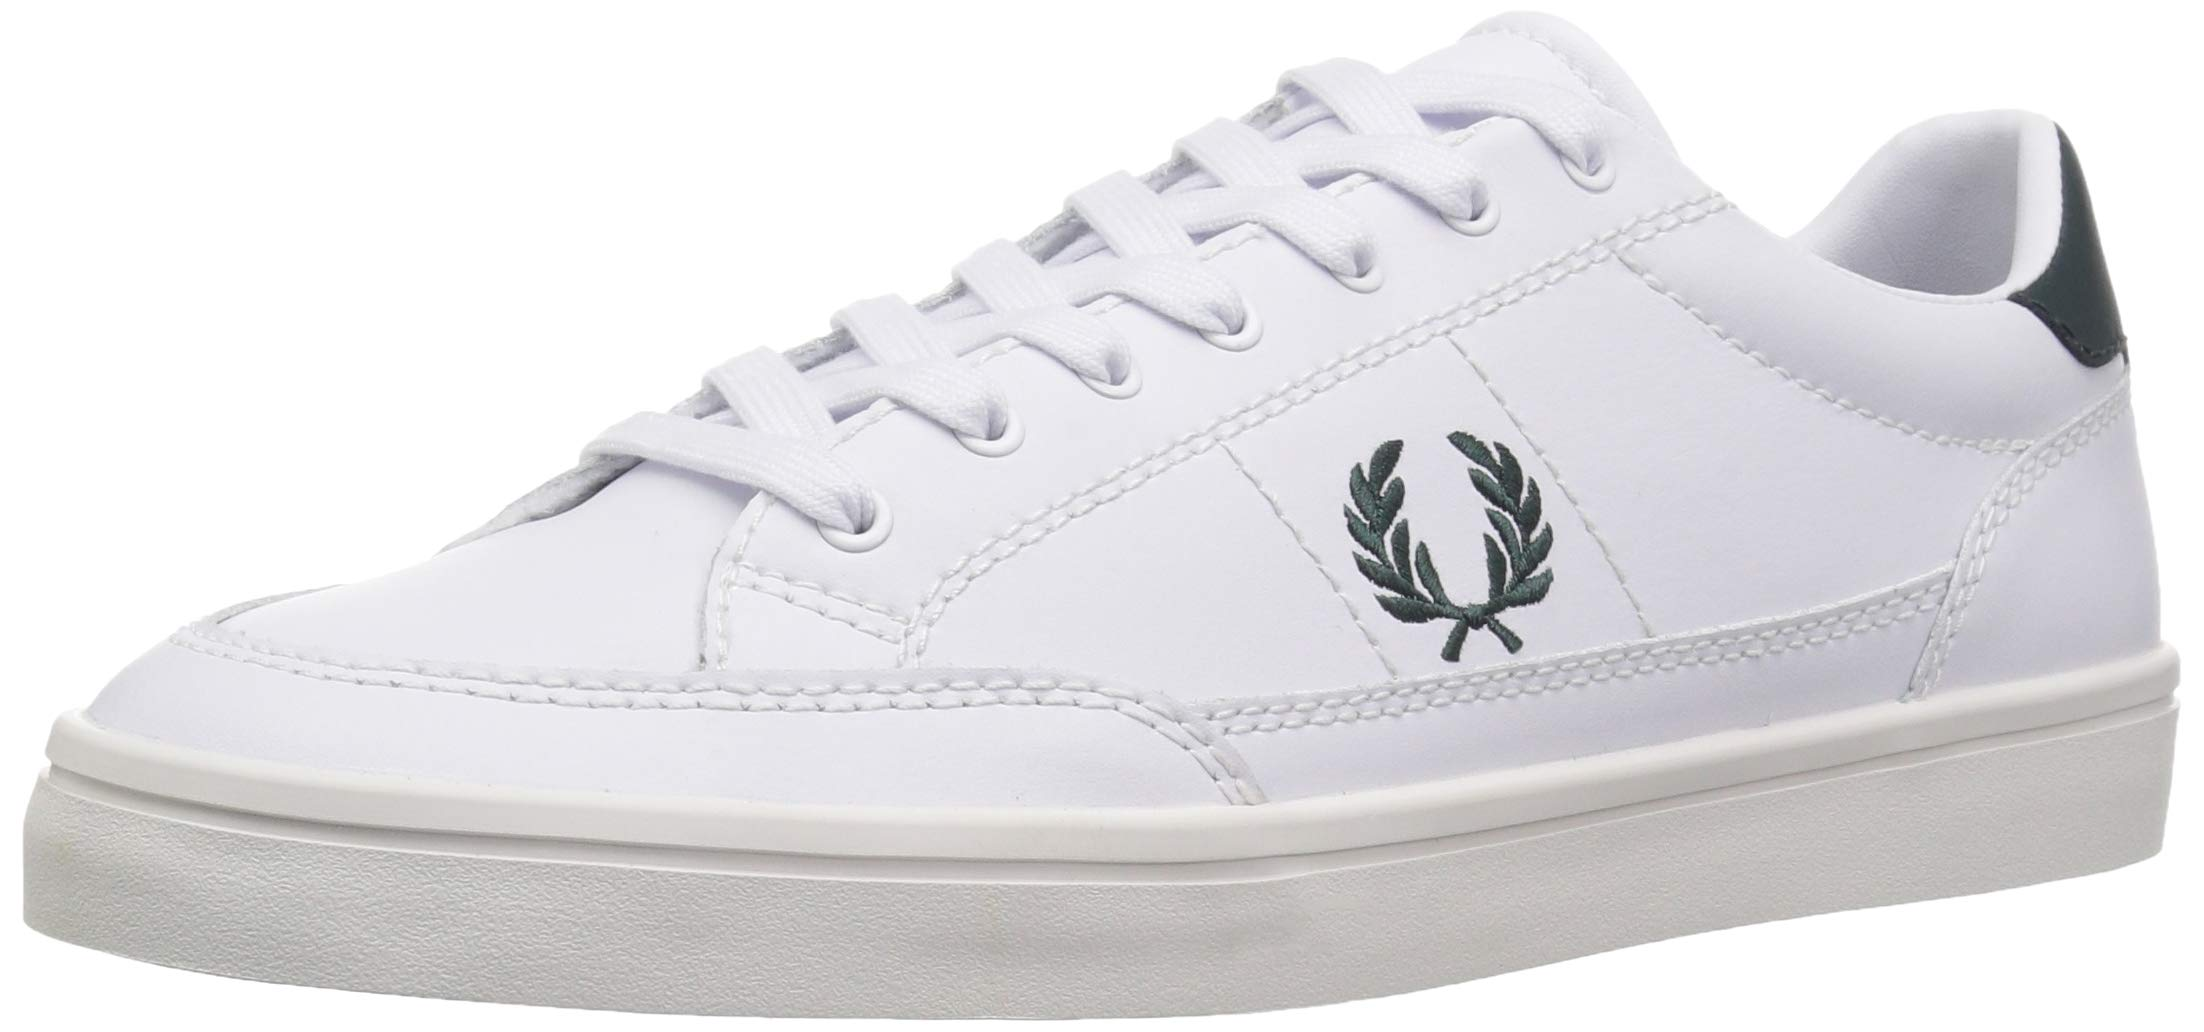 a70c9b04fcaaa Galleon - Fred Perry Men's Deuce Leather Sneaker, Dark White, 8 D UK ...